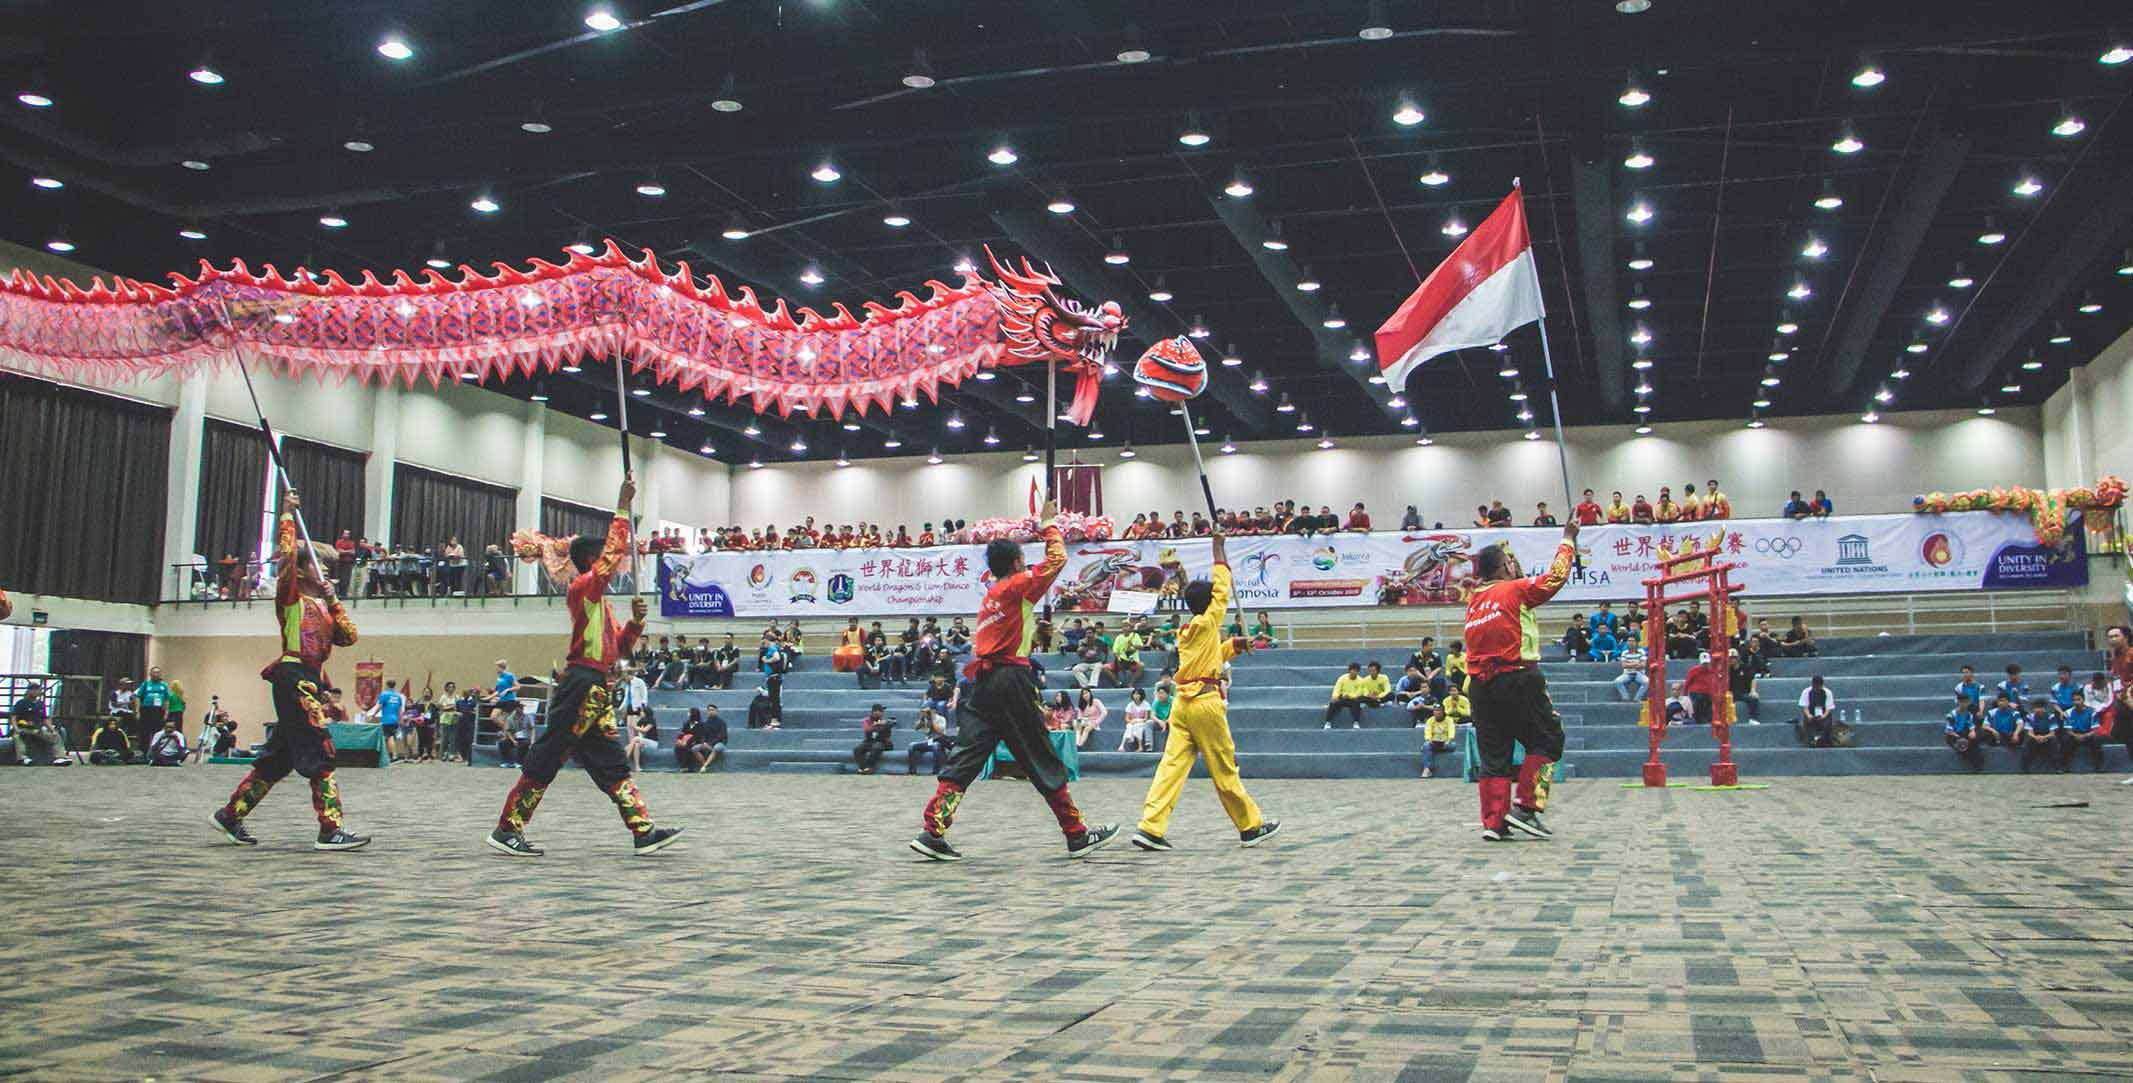 TAFISA 2016: World Dragon & Lion Dance Championship